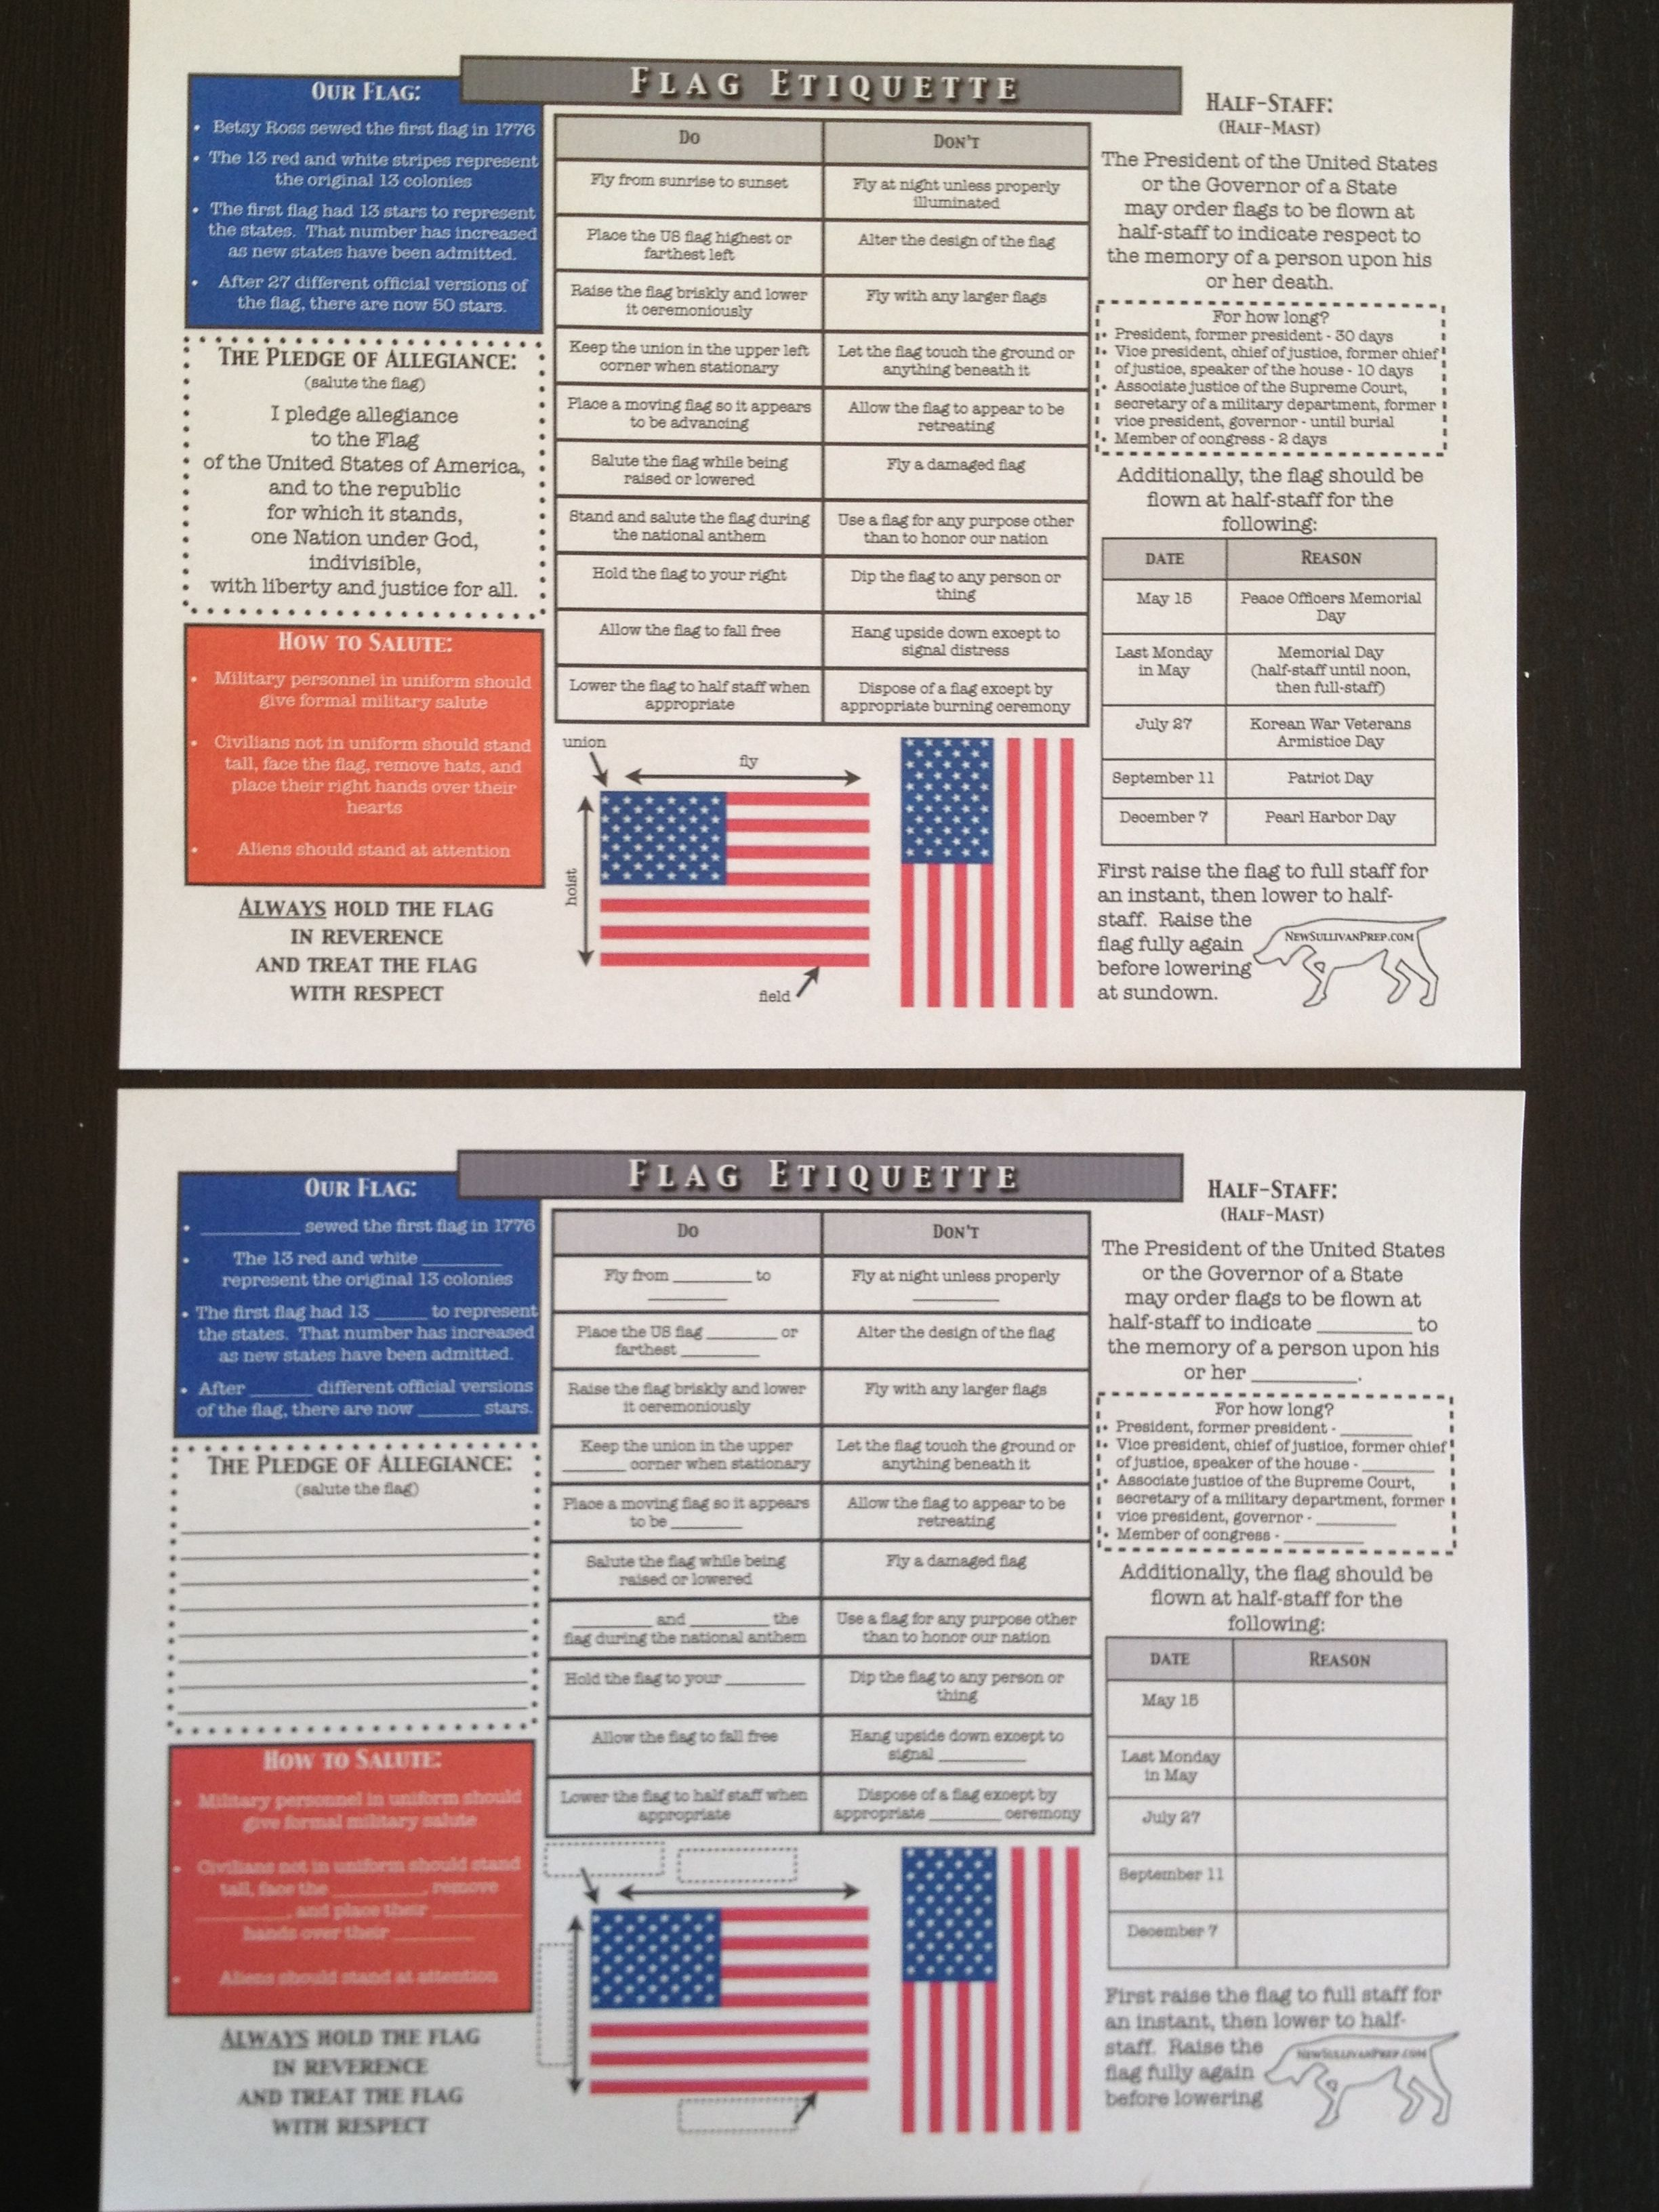 American Flag Etiquette Worksheets Free From Newsullivanprep Com